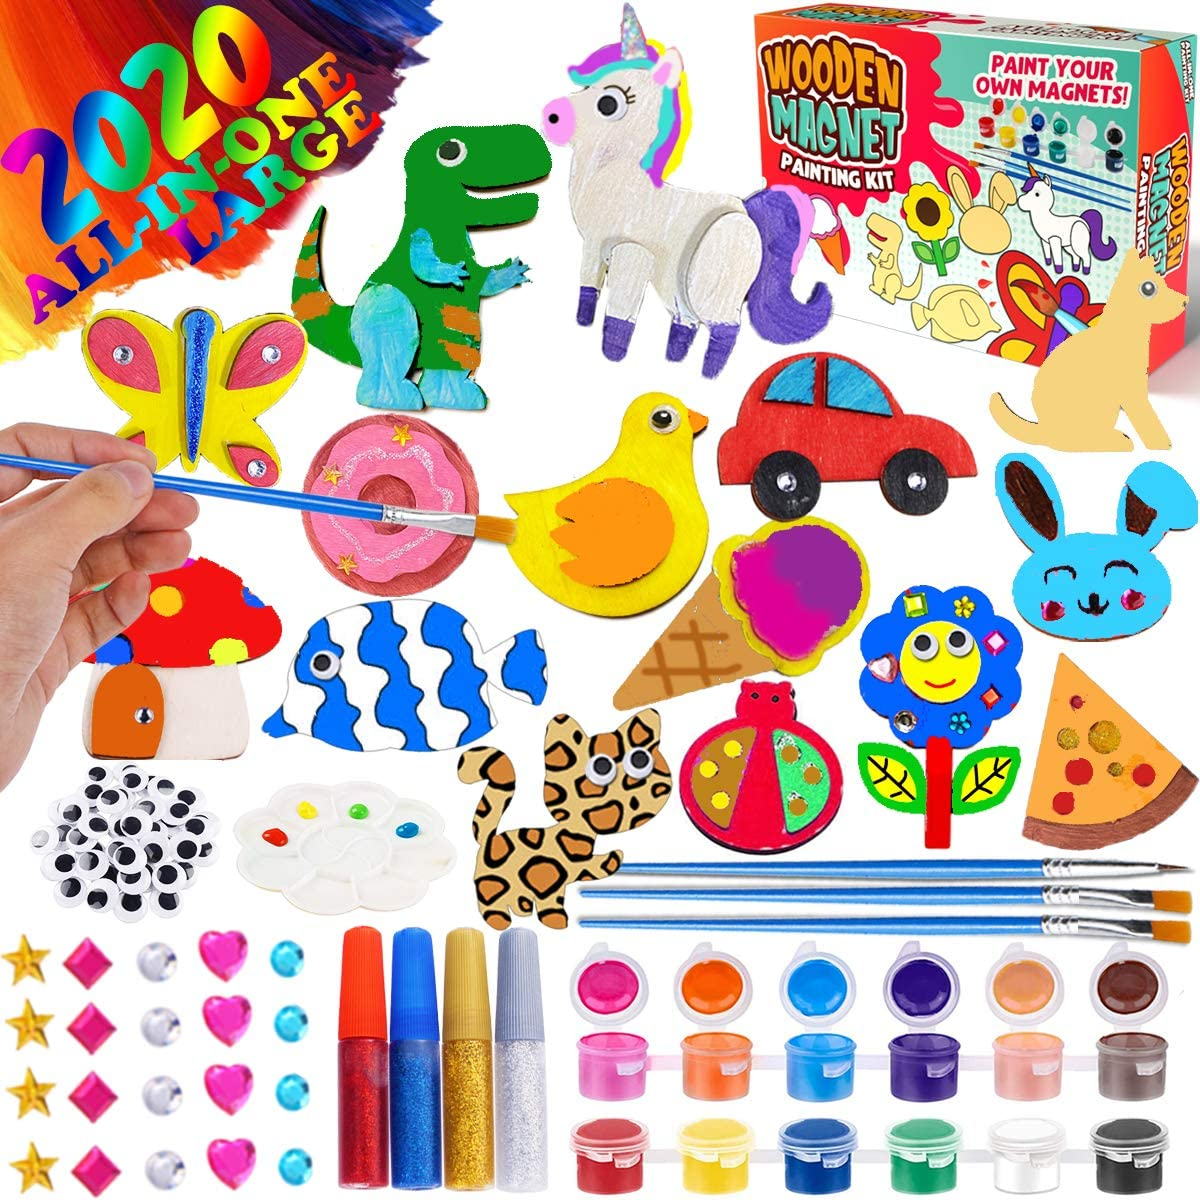 GoodyKing Arts and Crafts Supplies for Kids Painting Creativity Art Craft Kit Decorate Your Own Wooden Magnet Kids for Age 3 4 5 6 Year Old DIY Birthday Gift Family Activity Project Birthday Present